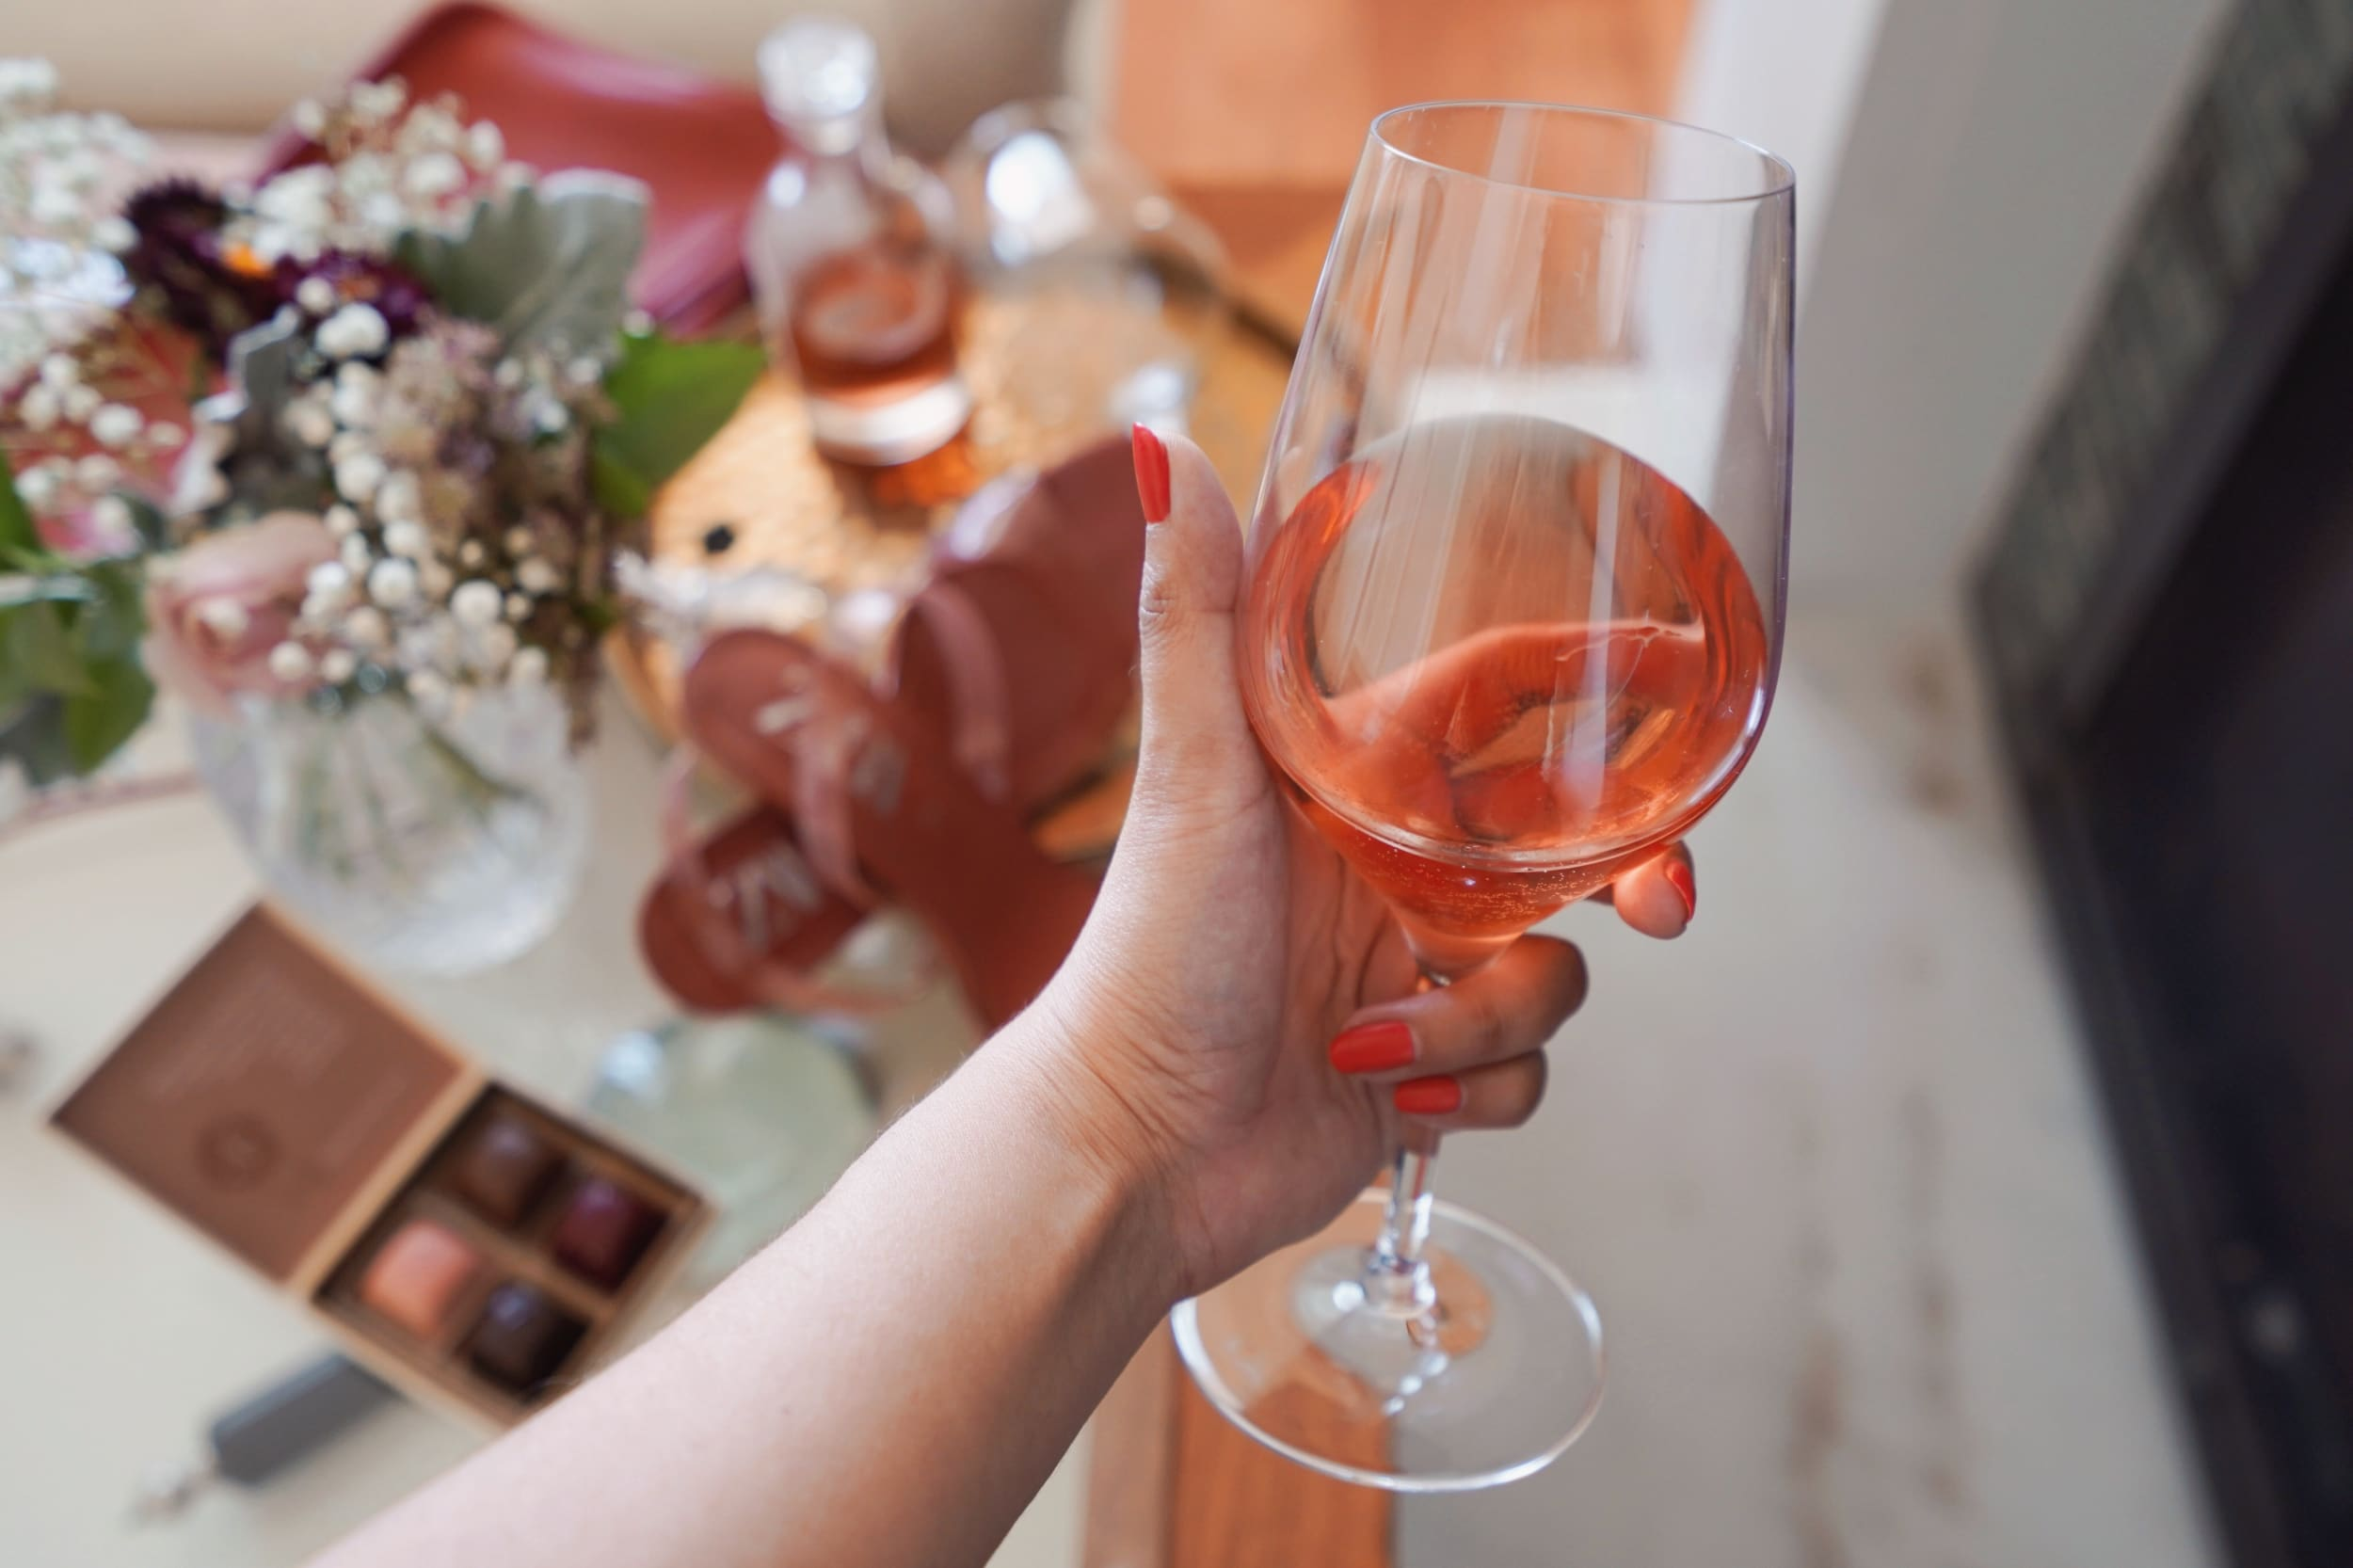 Rose Wine in a glass